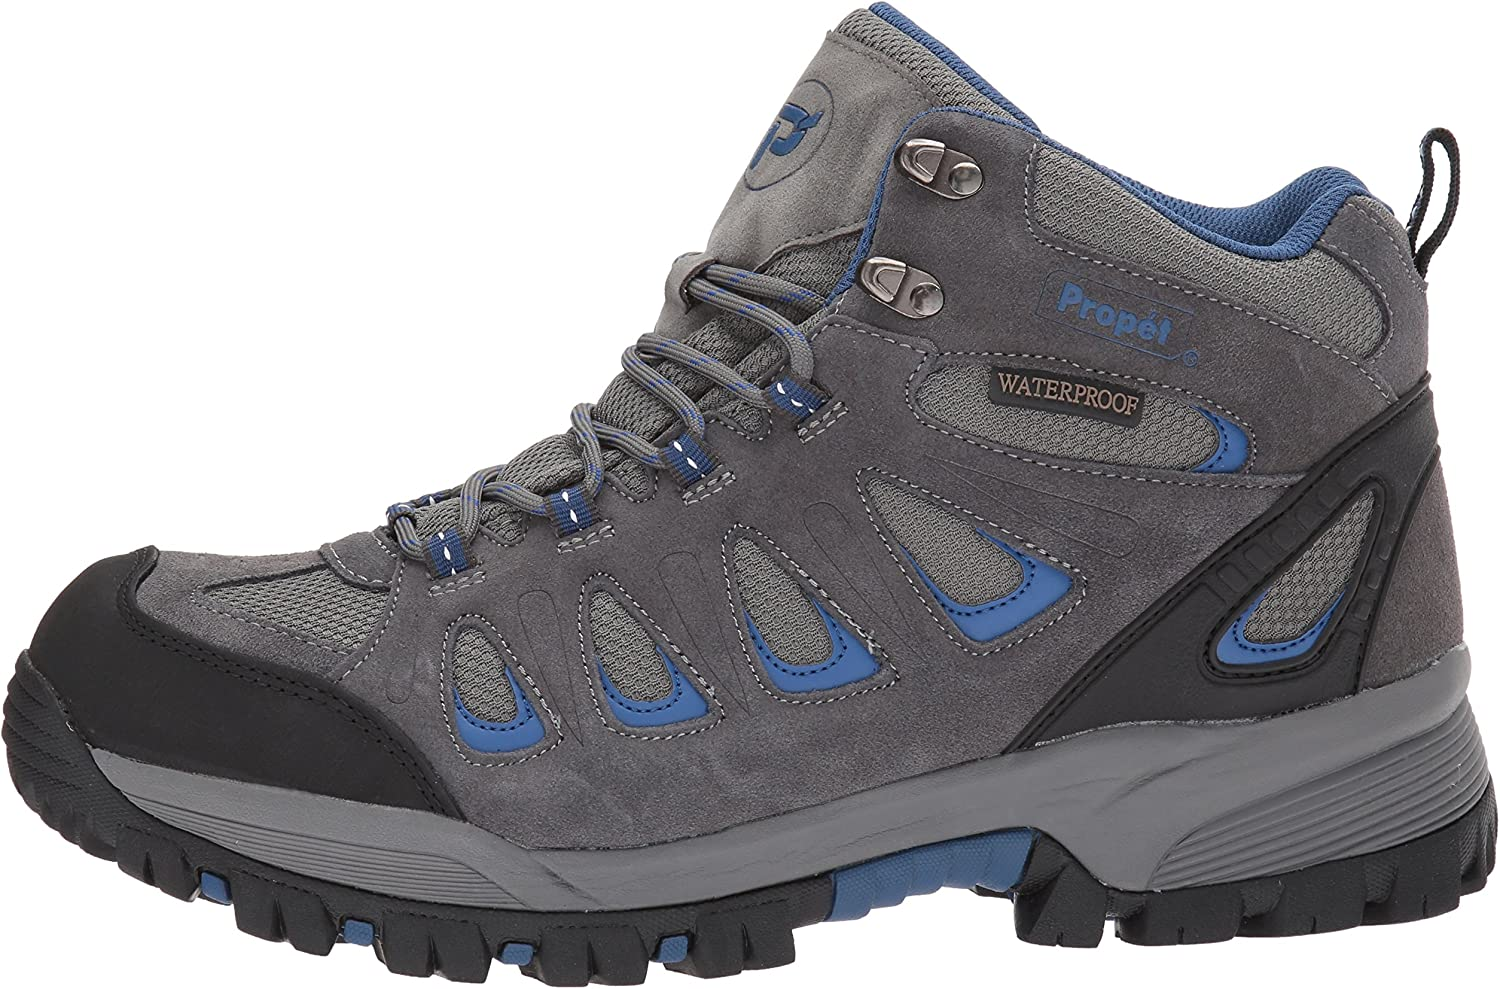 Propet Mens Ridge Walker Hiking Boot 9 XX-Wide Grey//Blue